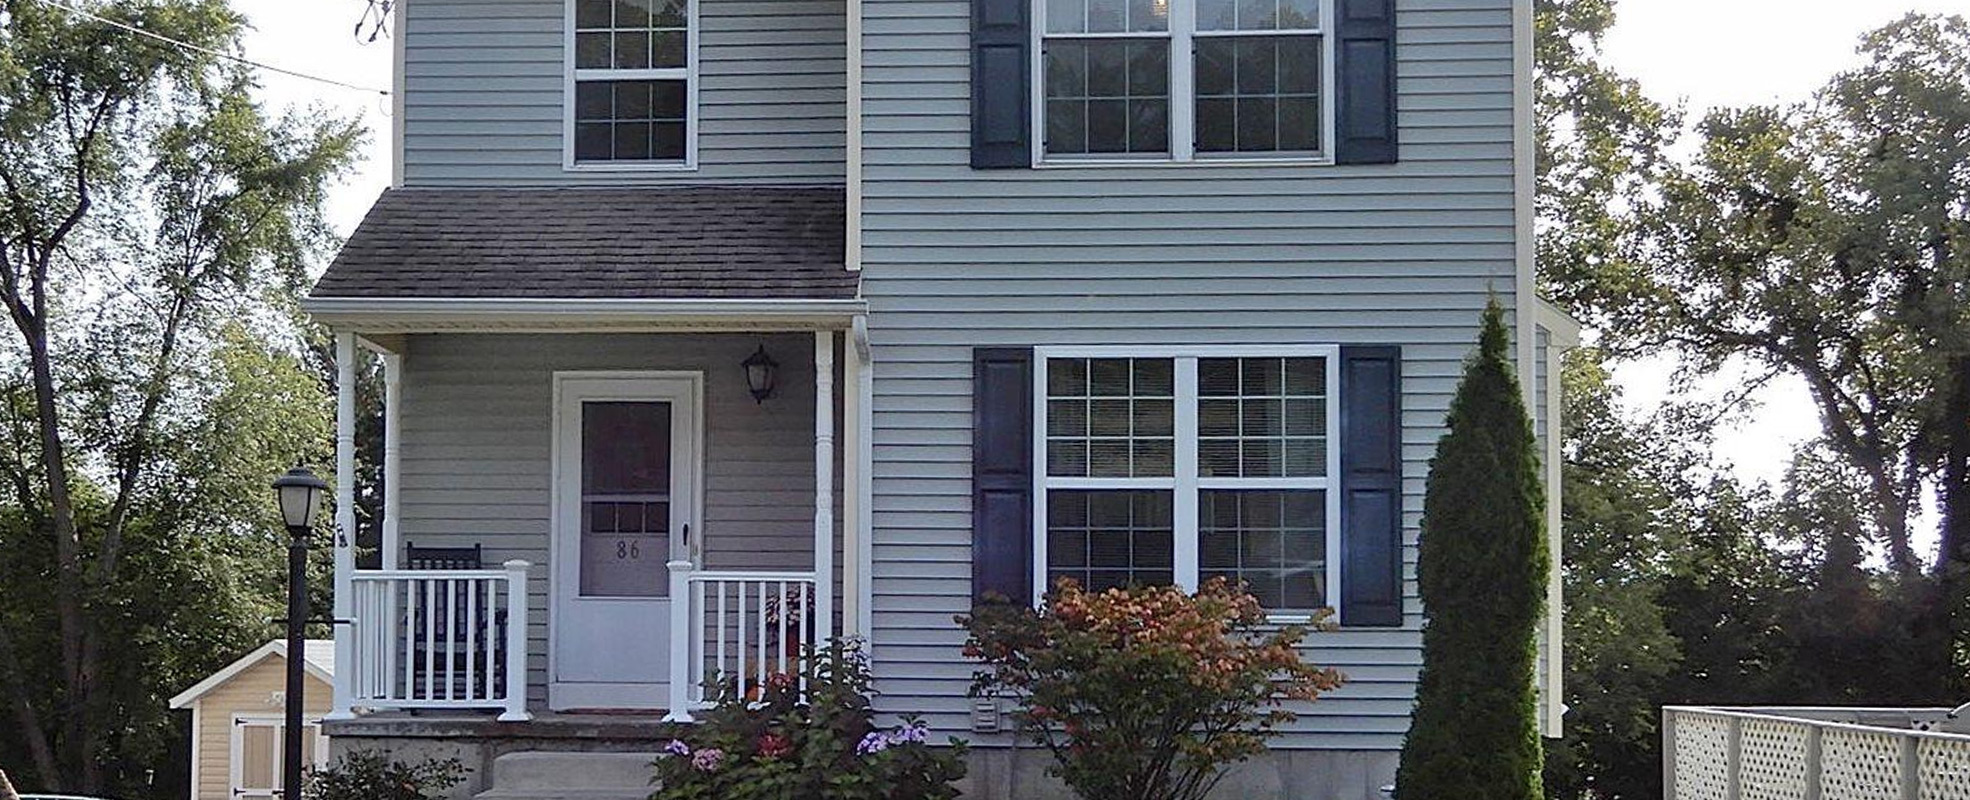 Featured: 86 Euclid Ave Troy, NY 12180